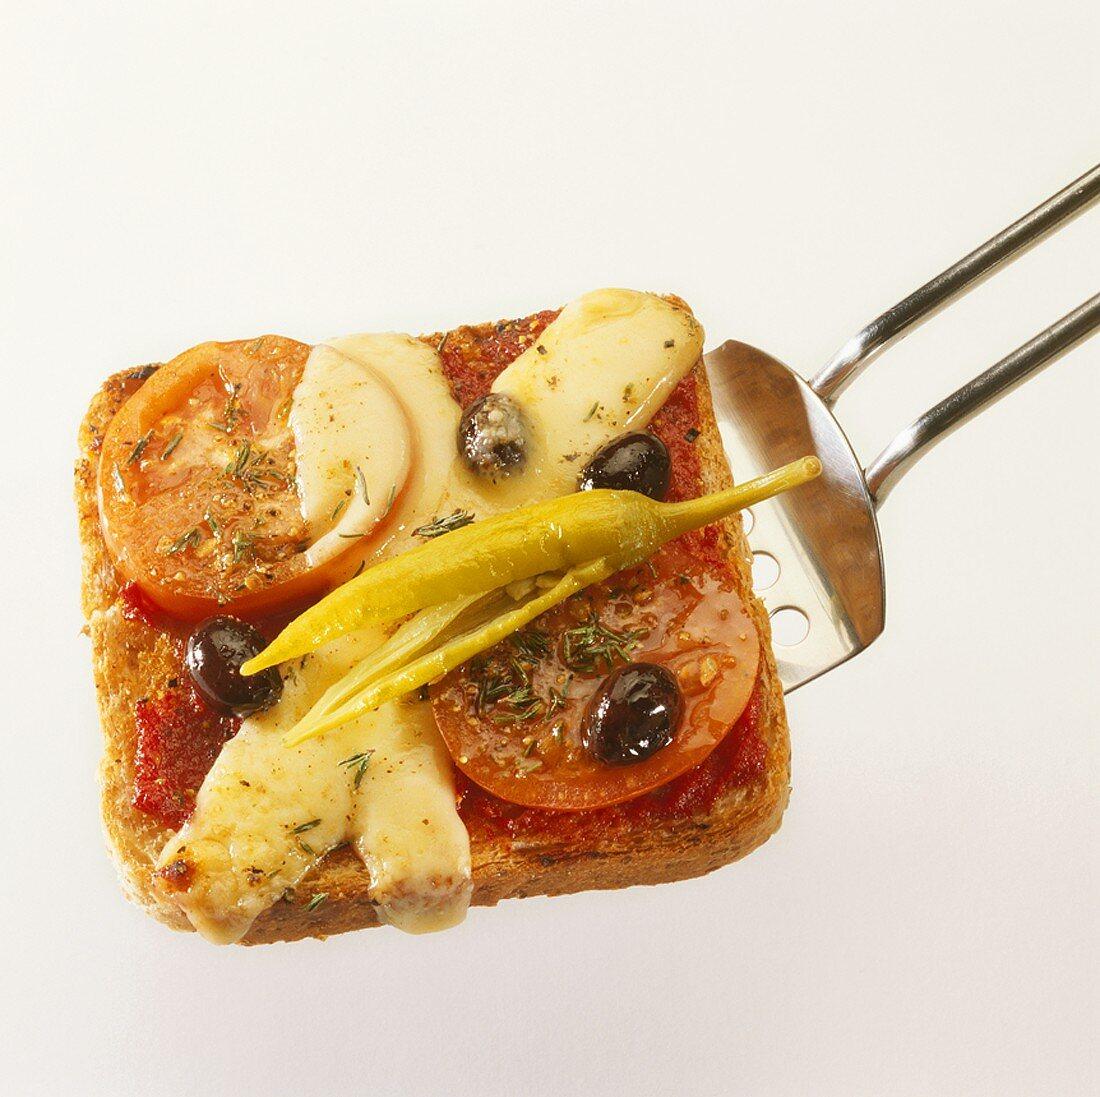 Chilli, tomato and cheese on toast